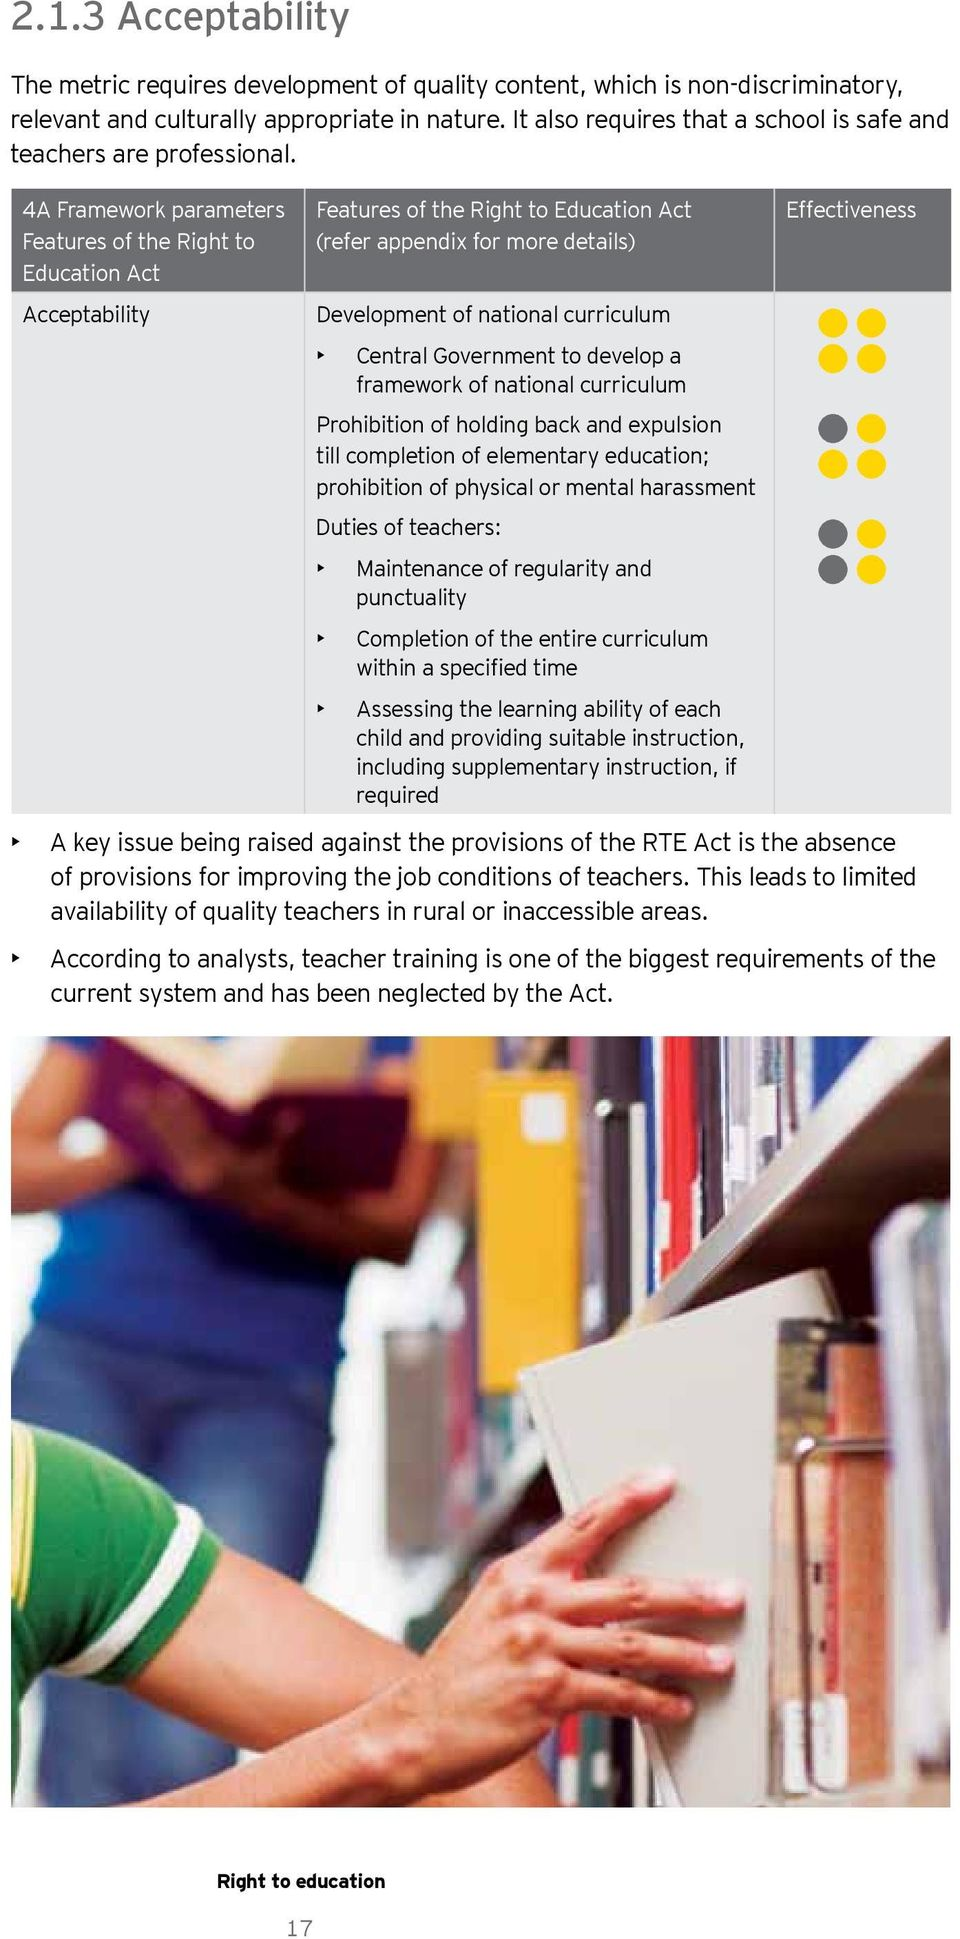 4A Framework parameters Features of the Right to Education Act Acceptability Features of the Right to Education Act (refer appendix for more details) Development of national curriculum Central